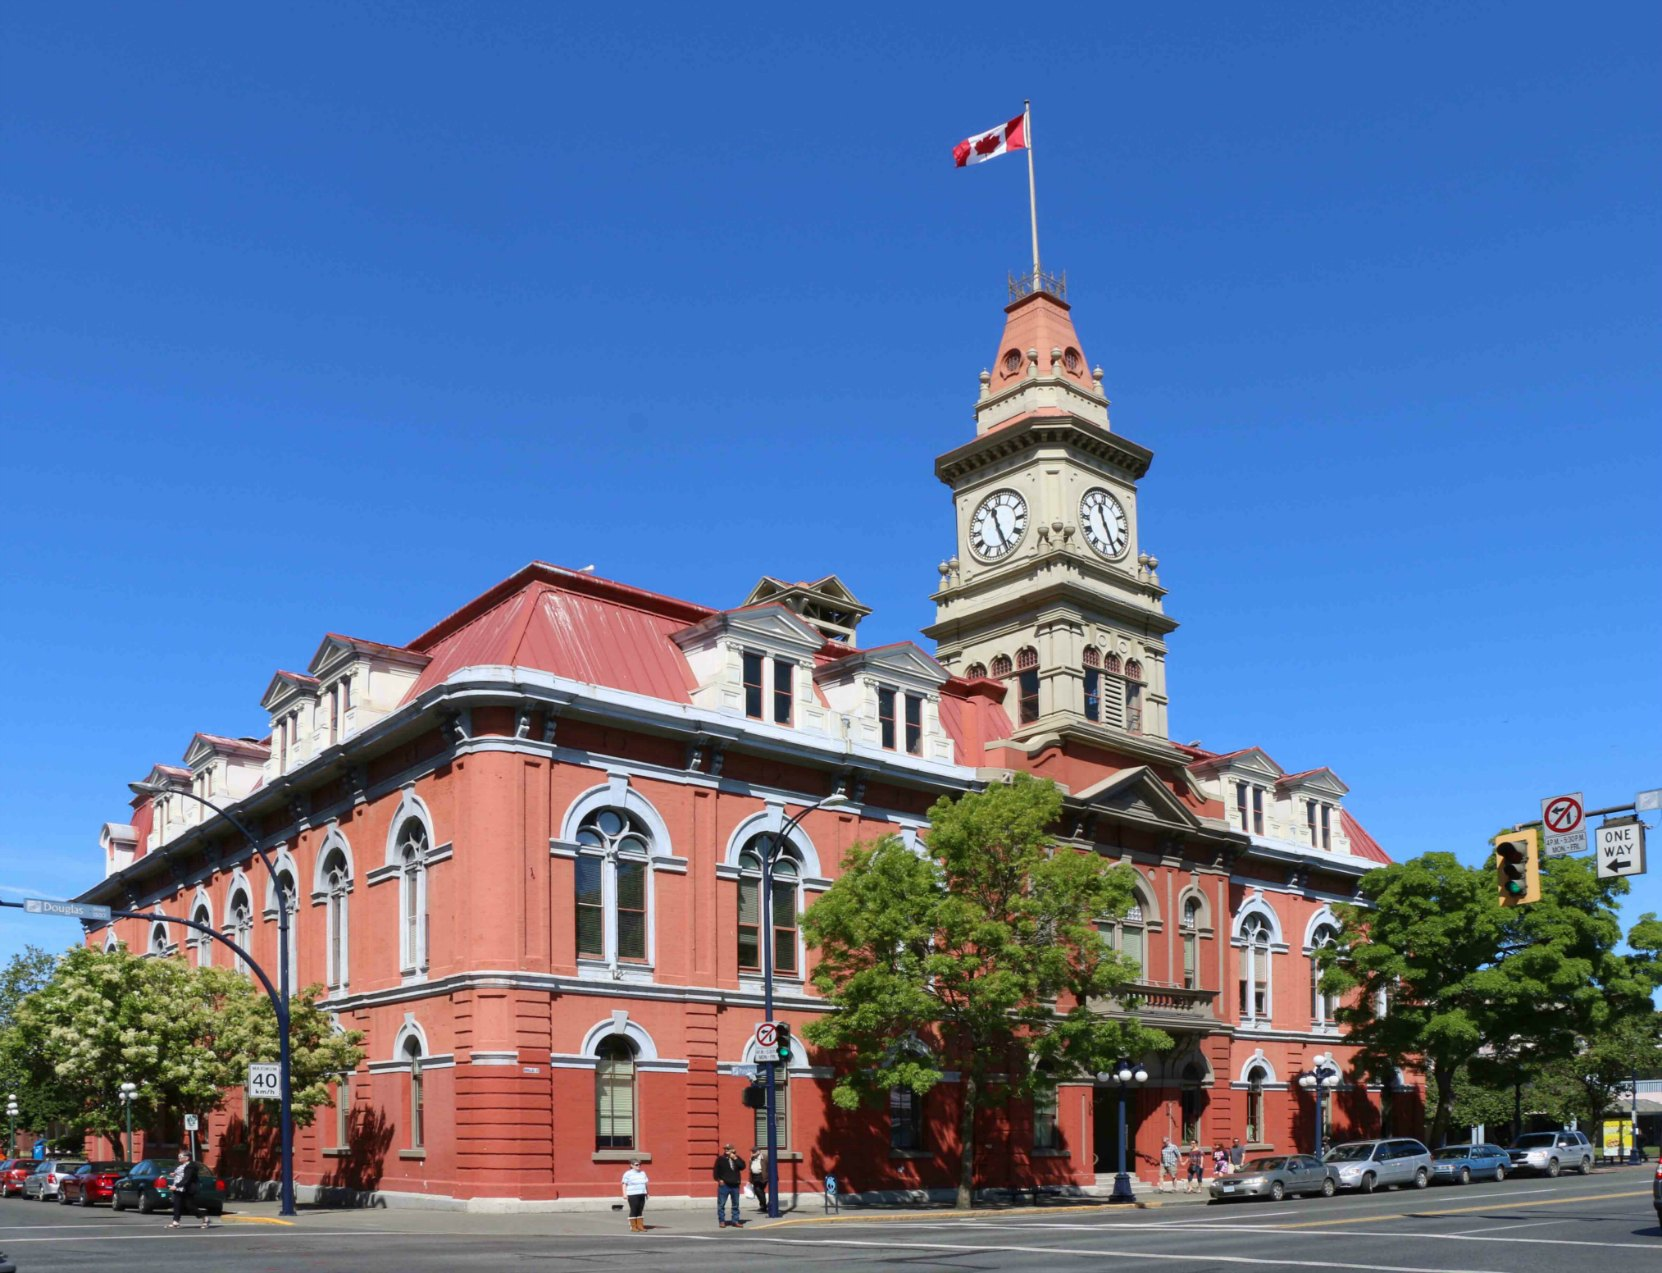 Victoria City Hall, designed and built by architect John Teague, a Past Master of Victoria-Columbia Lodge No. 1. (photo by Temple Lodge No. 33 Historian)